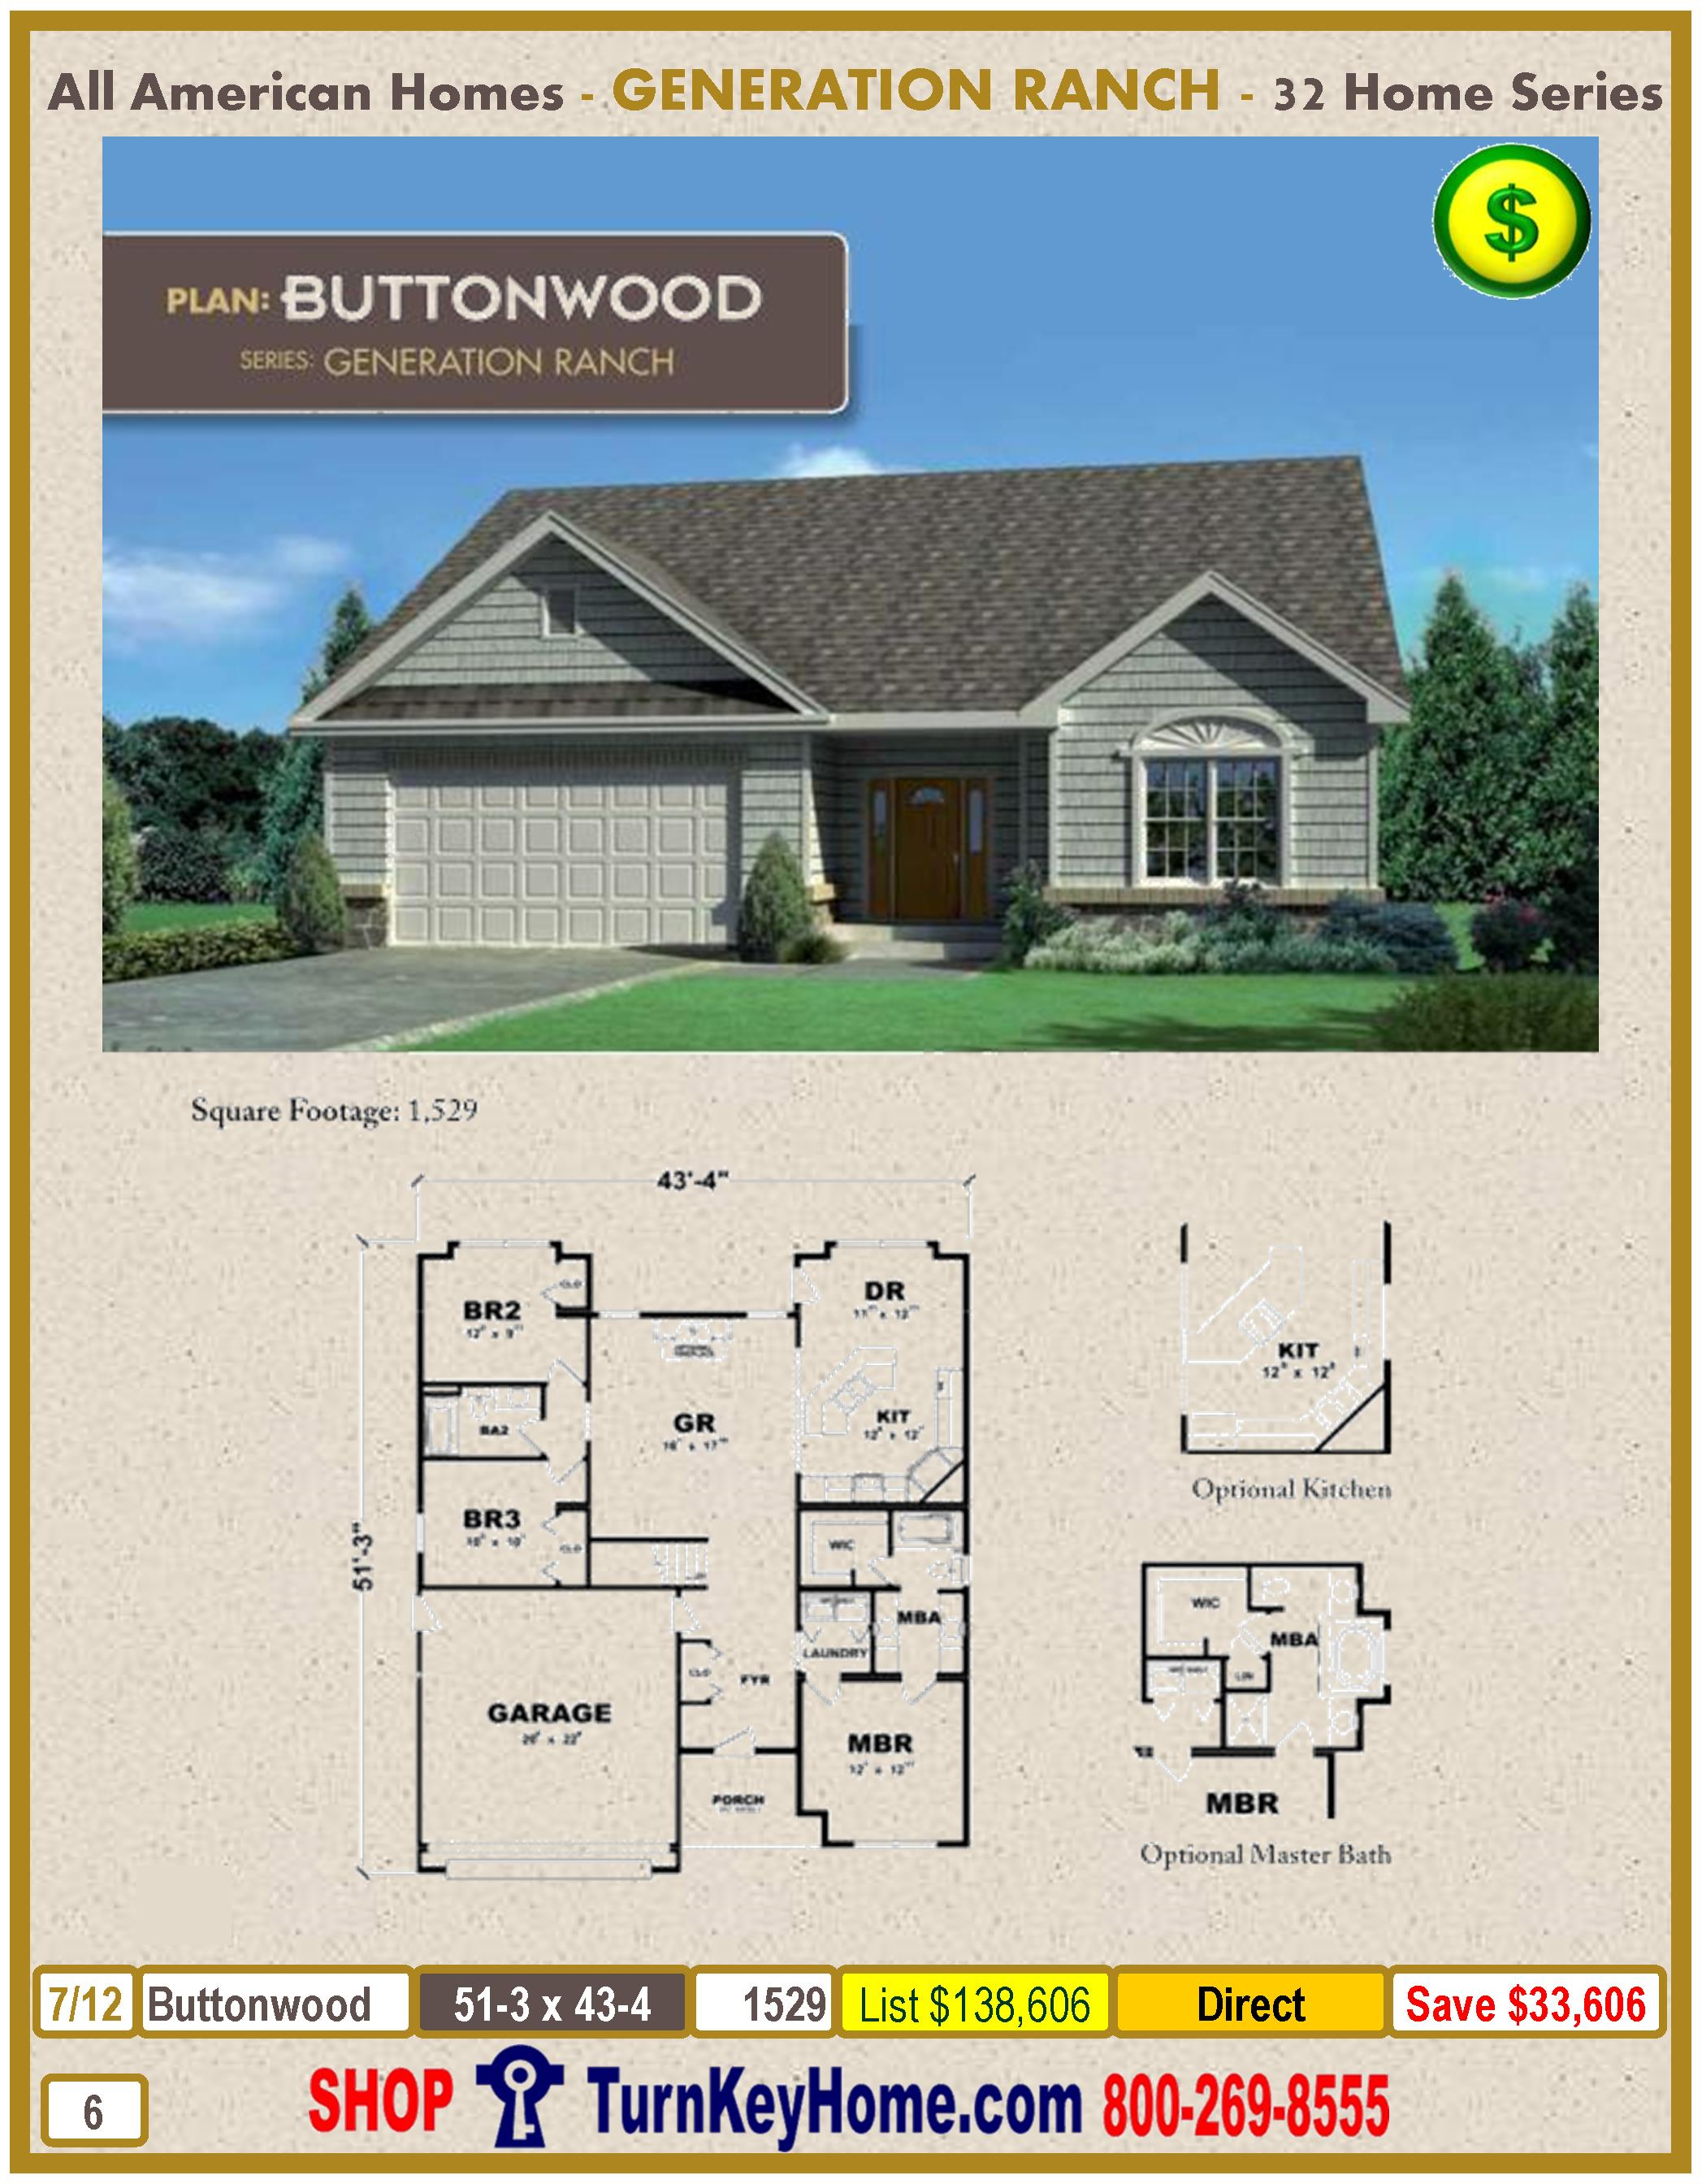 Modular.All.American.Homes.American.Lifestyle.Home.Series.Ranch.Plan.Catalog.Page.5.Buttonwood.Direct.Price.021315